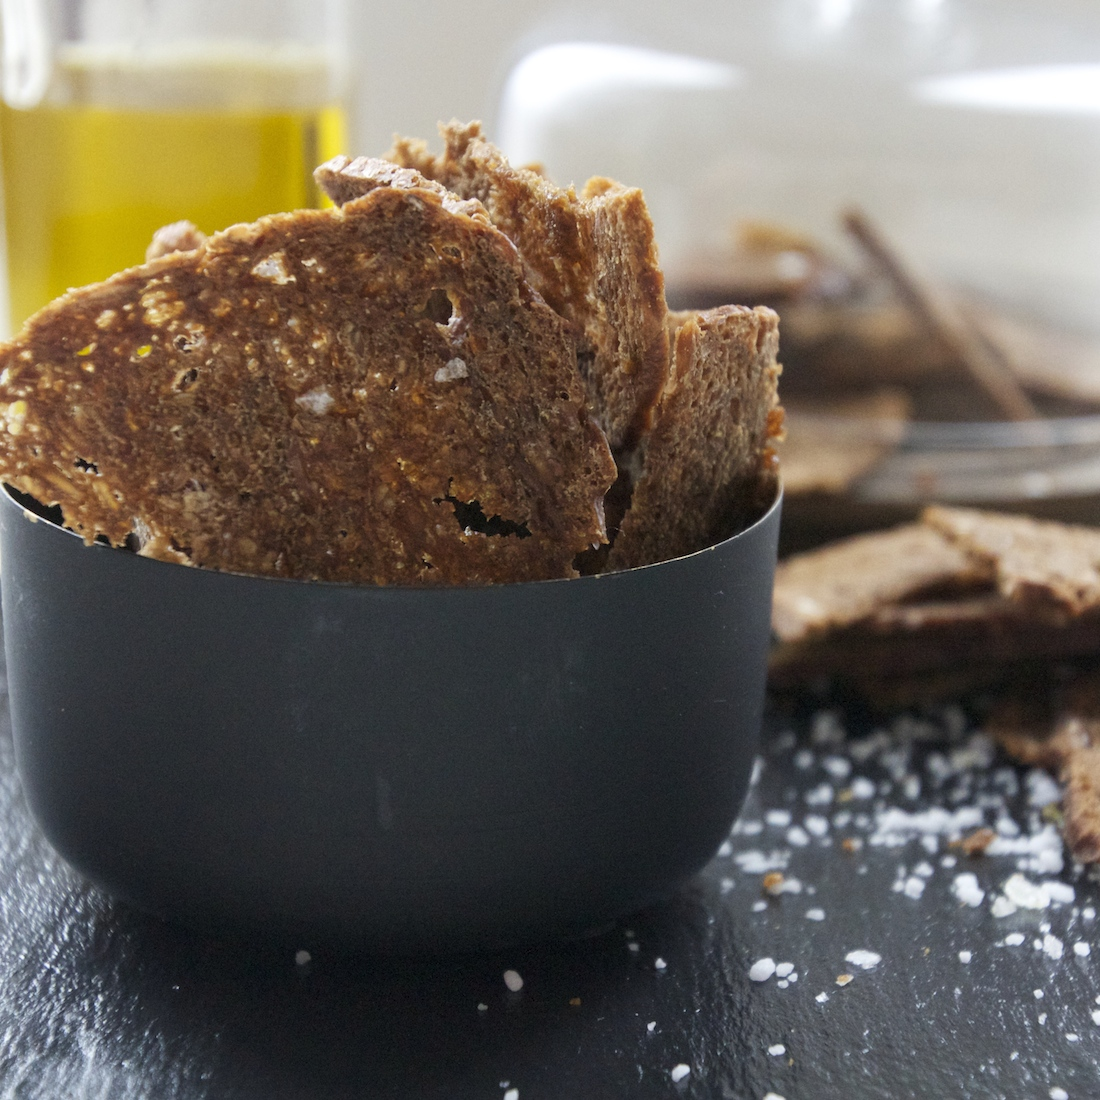 hygge, RUGBRØDS CHIPS, the hygge journal, hyggefood, hyggeligt, whatishygge, thisishygge